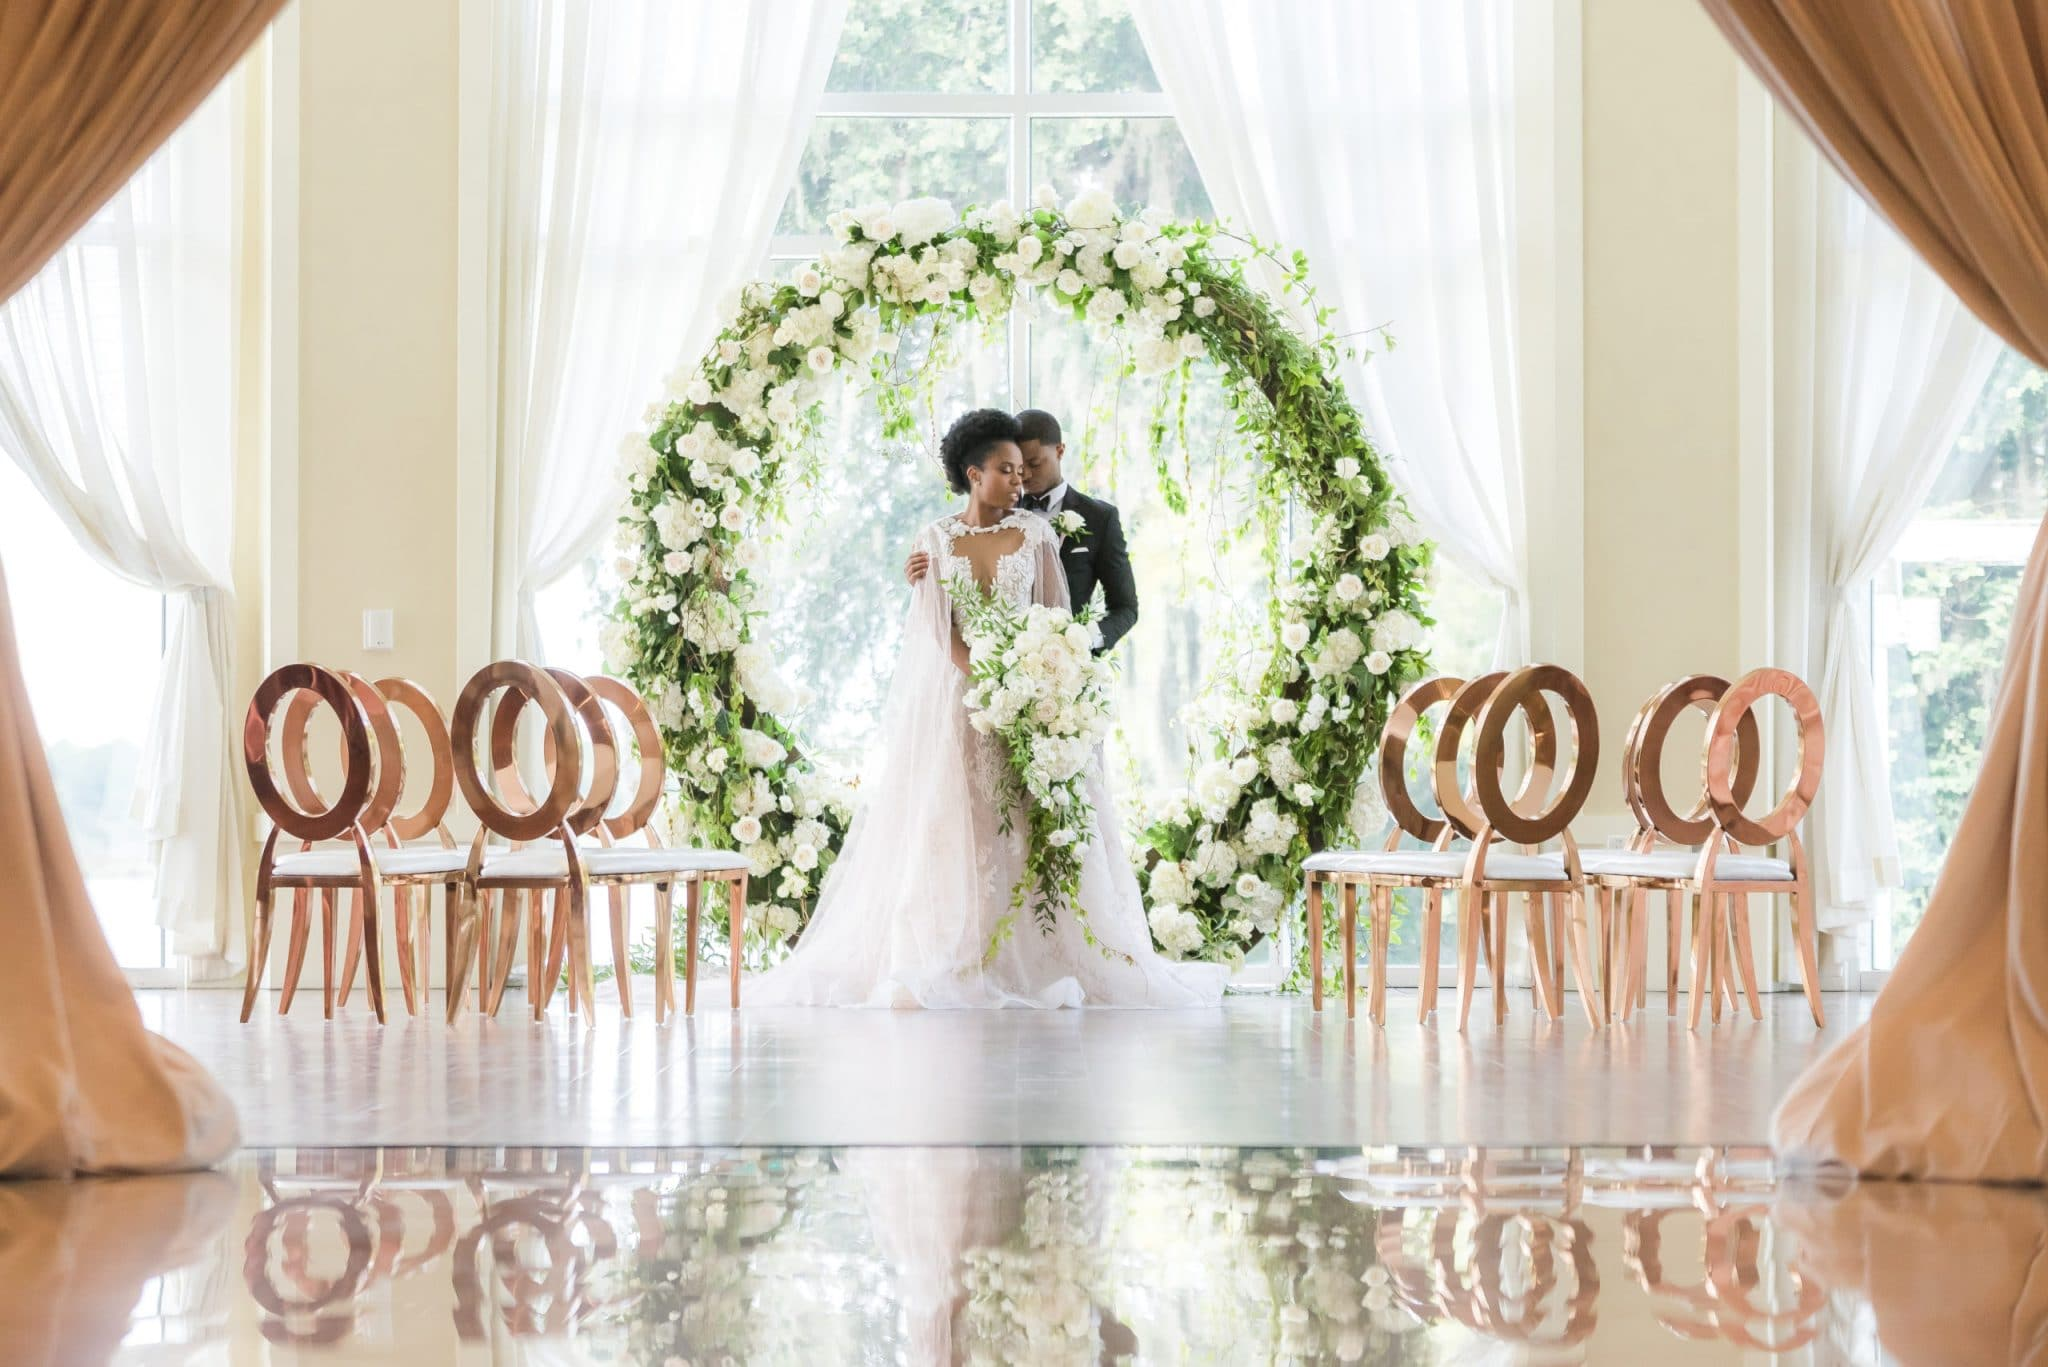 Orlando Wedding and Party Rentals, bride and groom standing in front of flower ring at ceremony